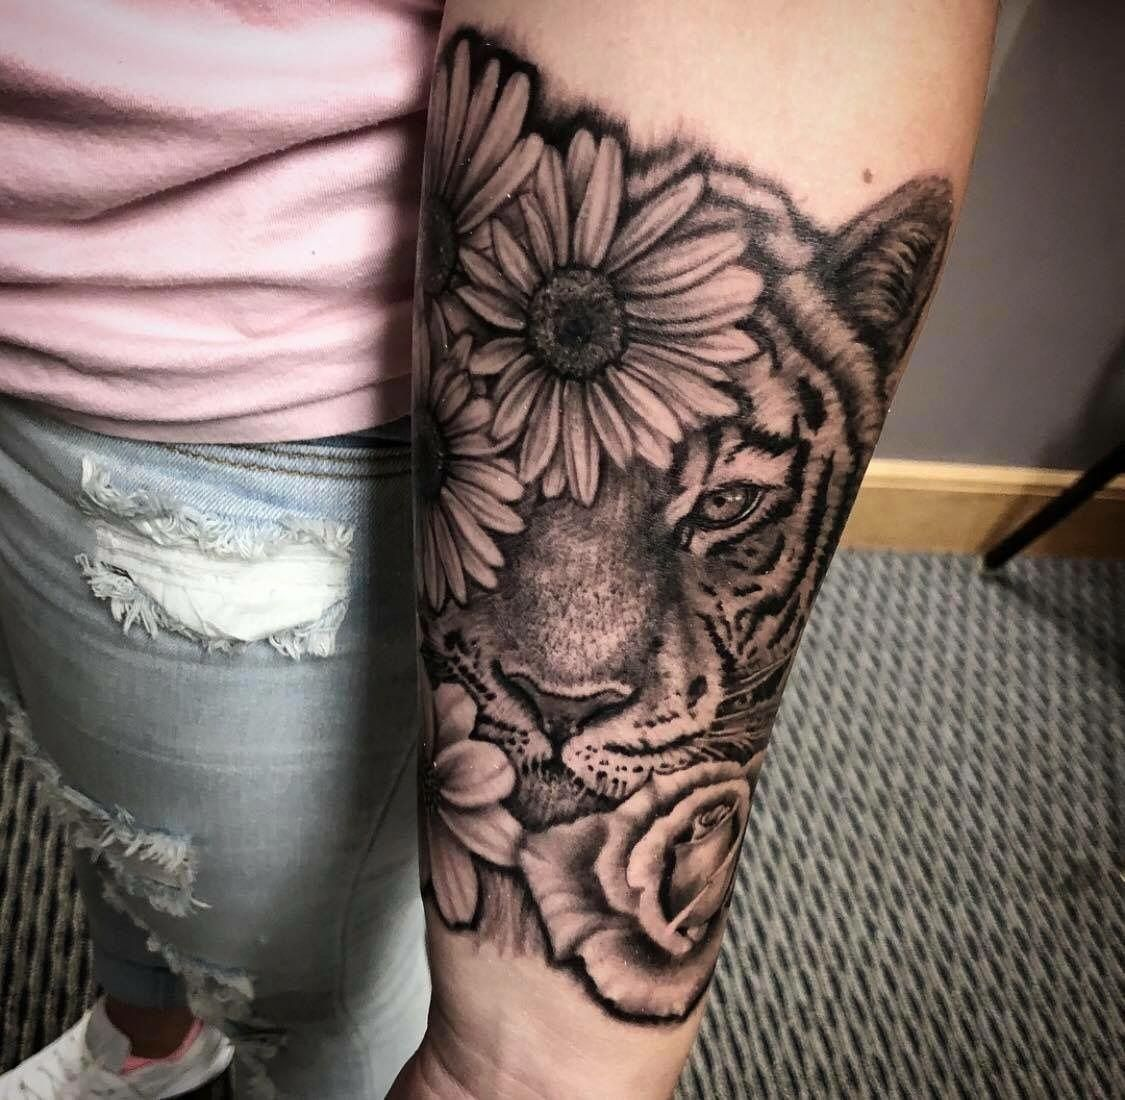 Full Sleeve Tattoos With Meaning Halfsleevetattoos In 2020 Forearm Cover Up Tattoos Tattoos For Women Half Sleeve Half Sleeve Tattoo